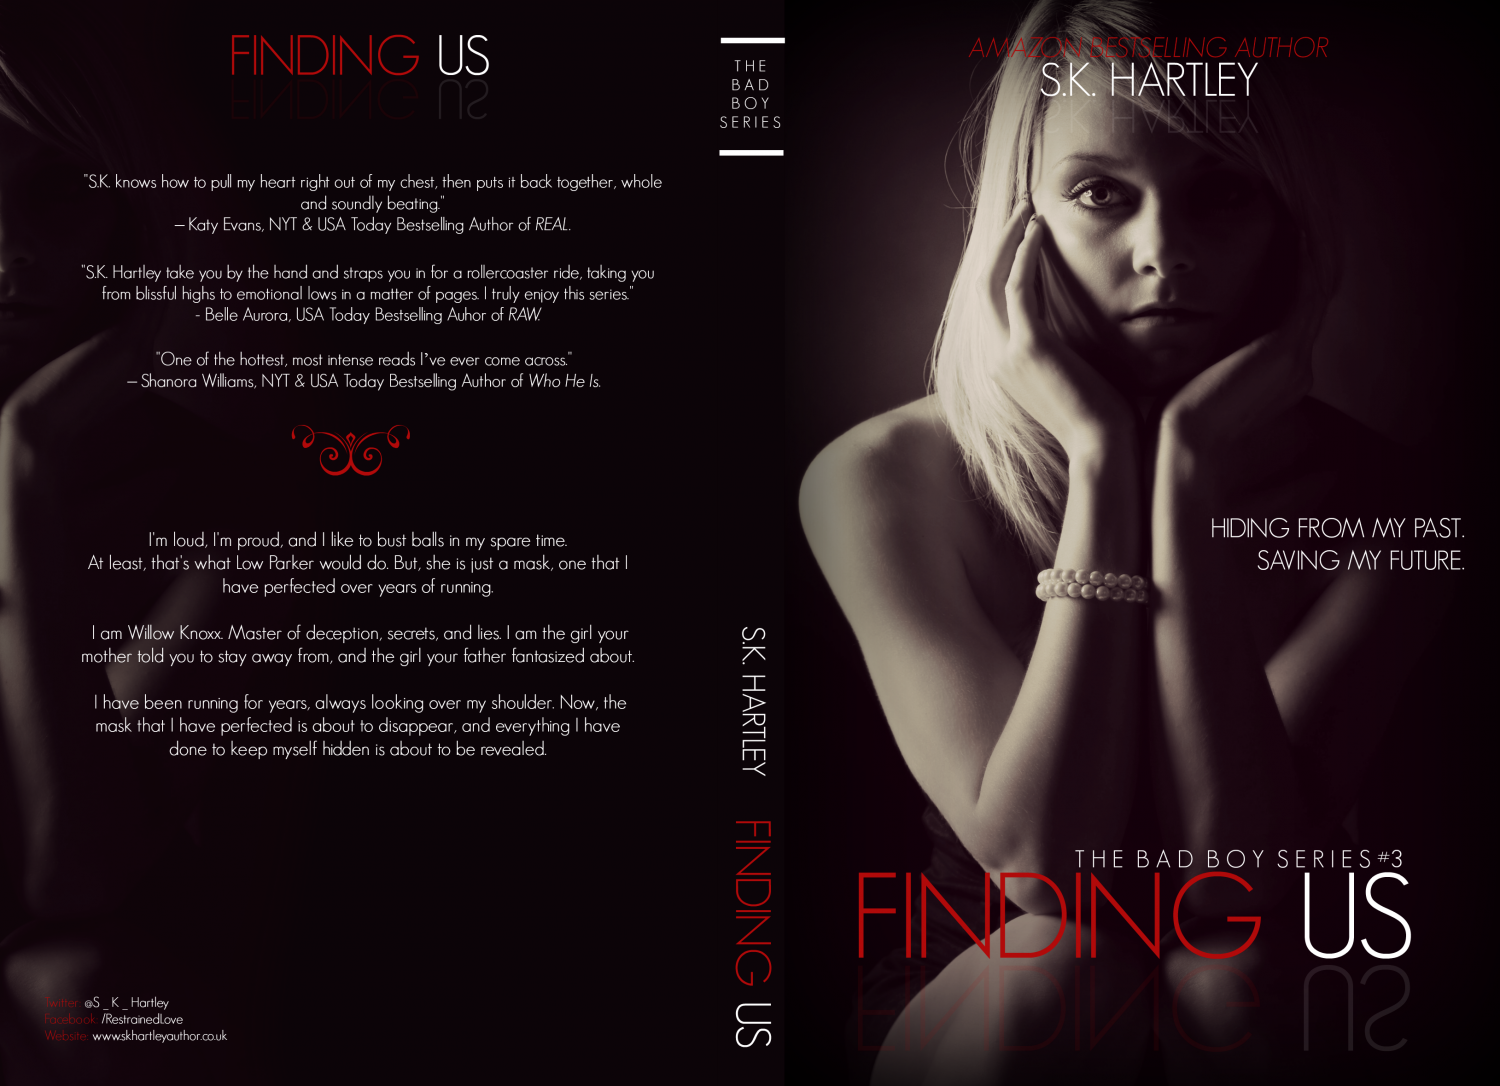 FINDING US PAPERBACK #1